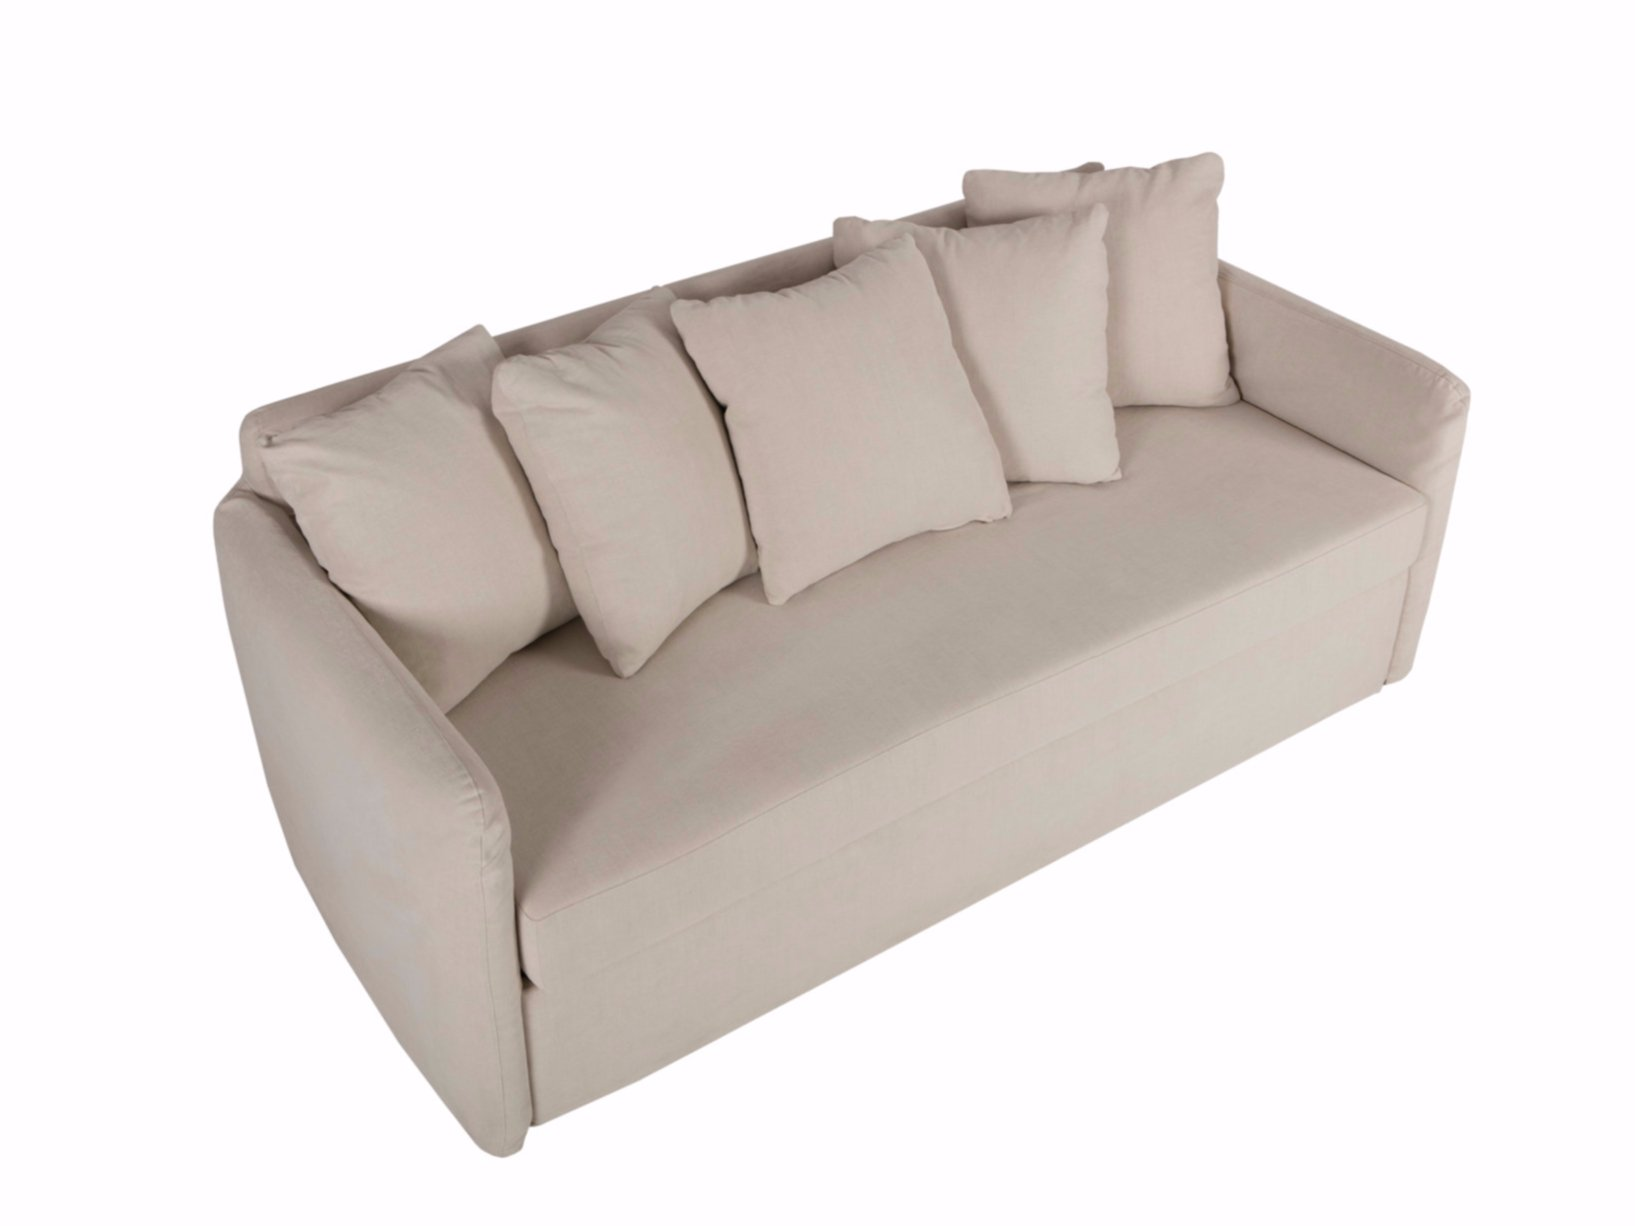 Upholstered 3 seater fabric sofa bed LOTTA By SITS